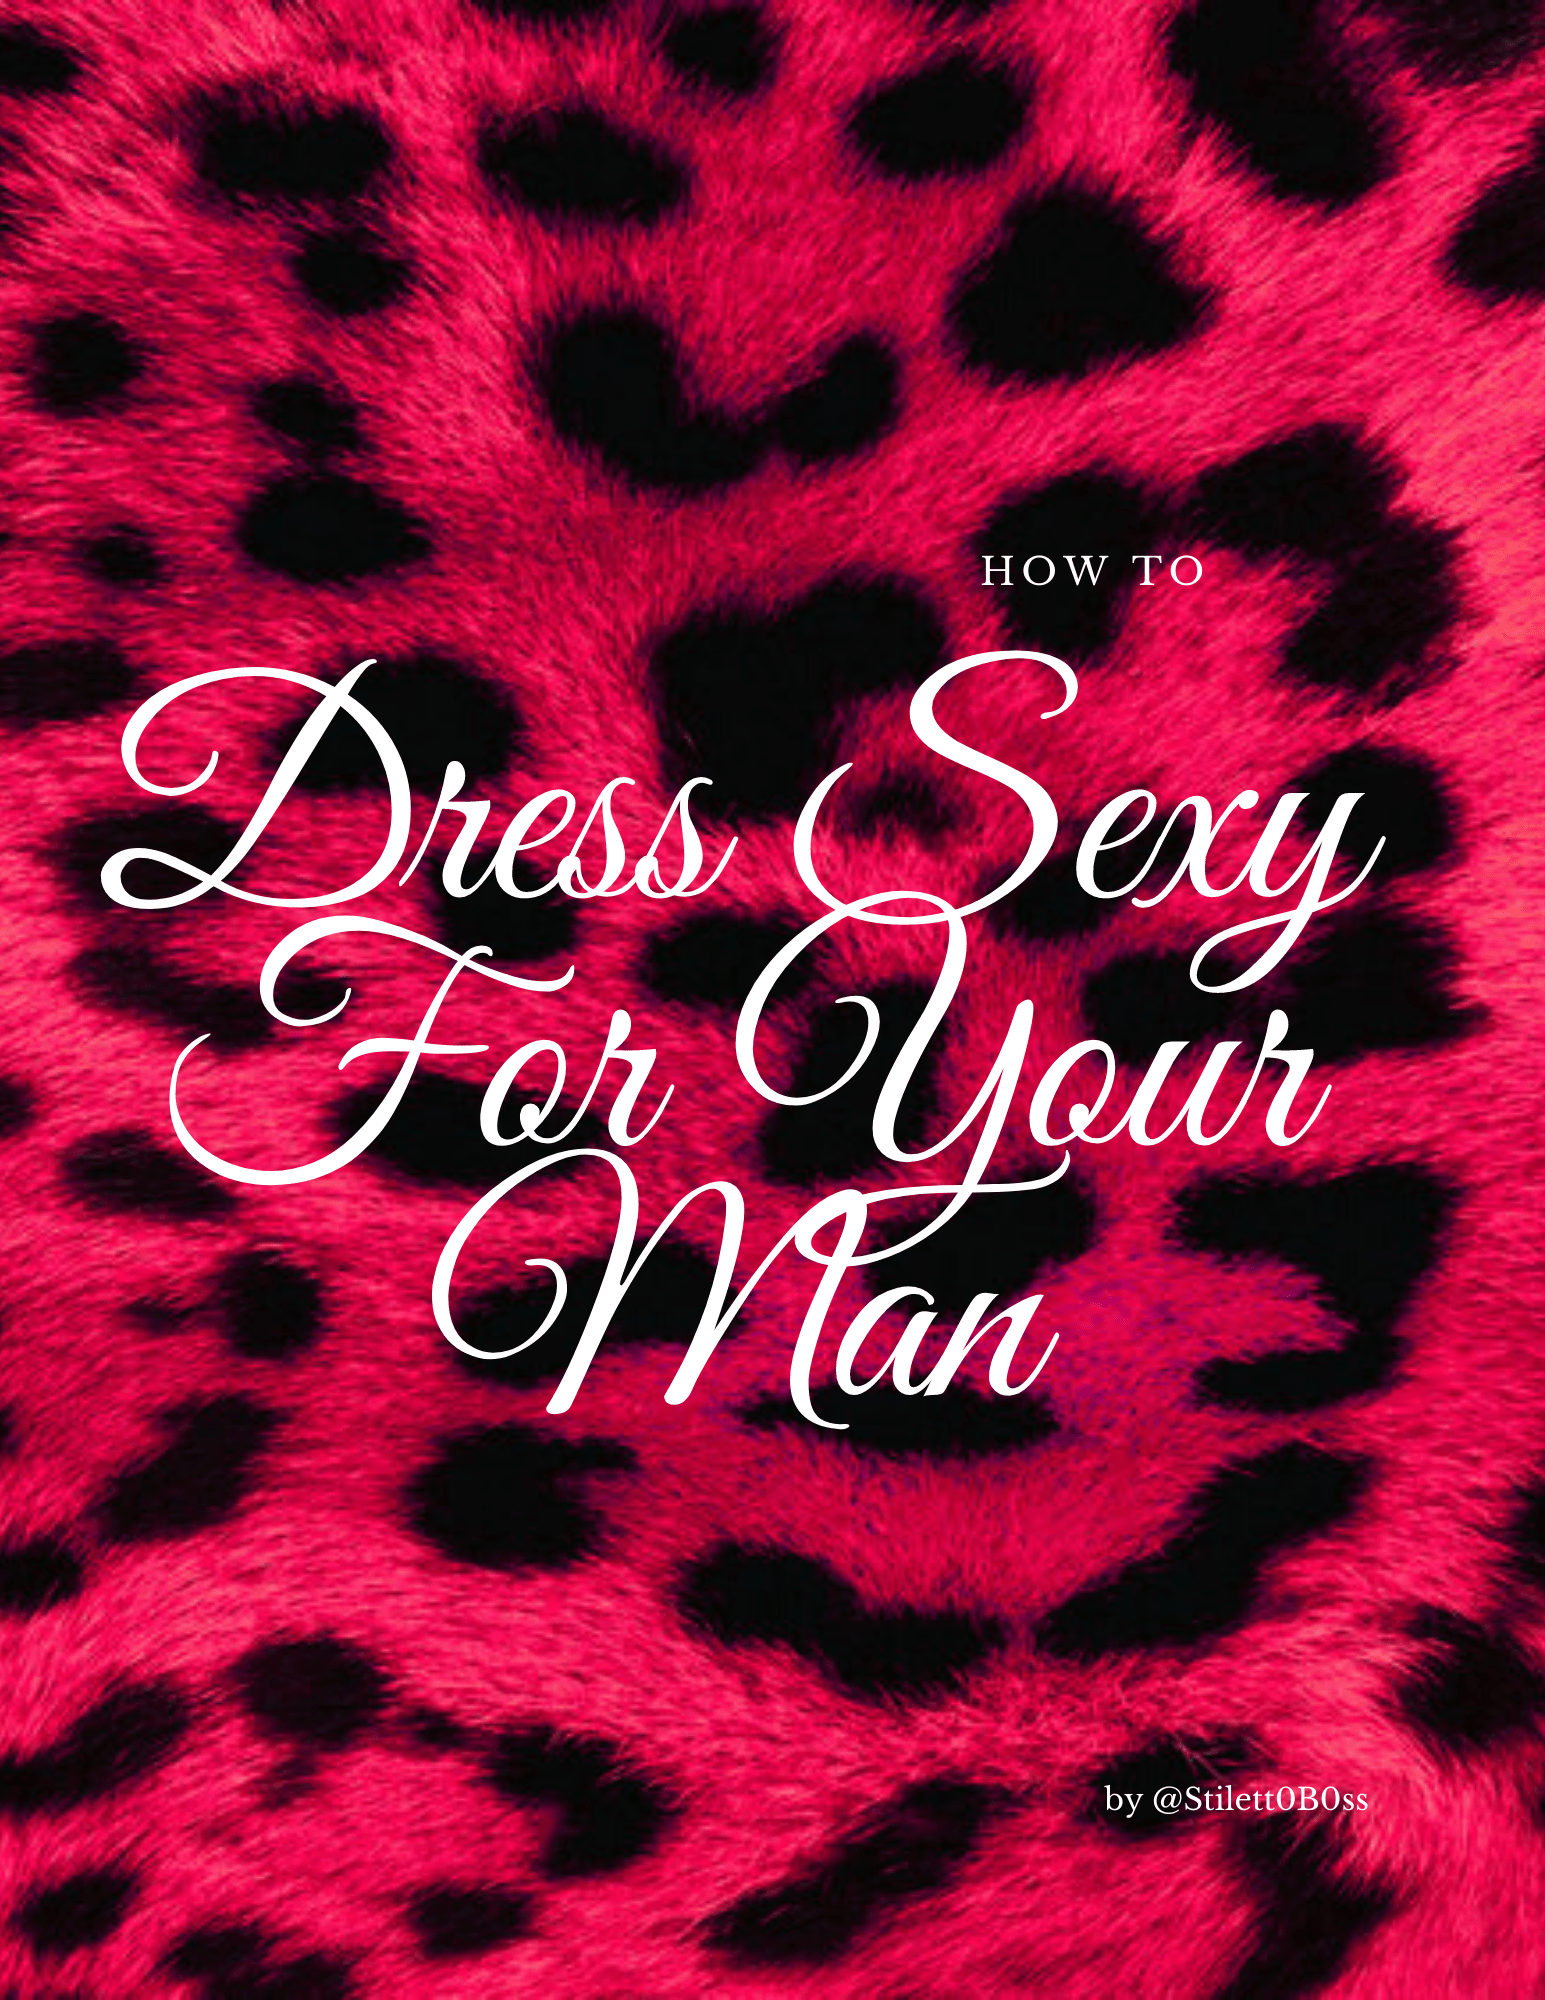 How to dress sexy for your man